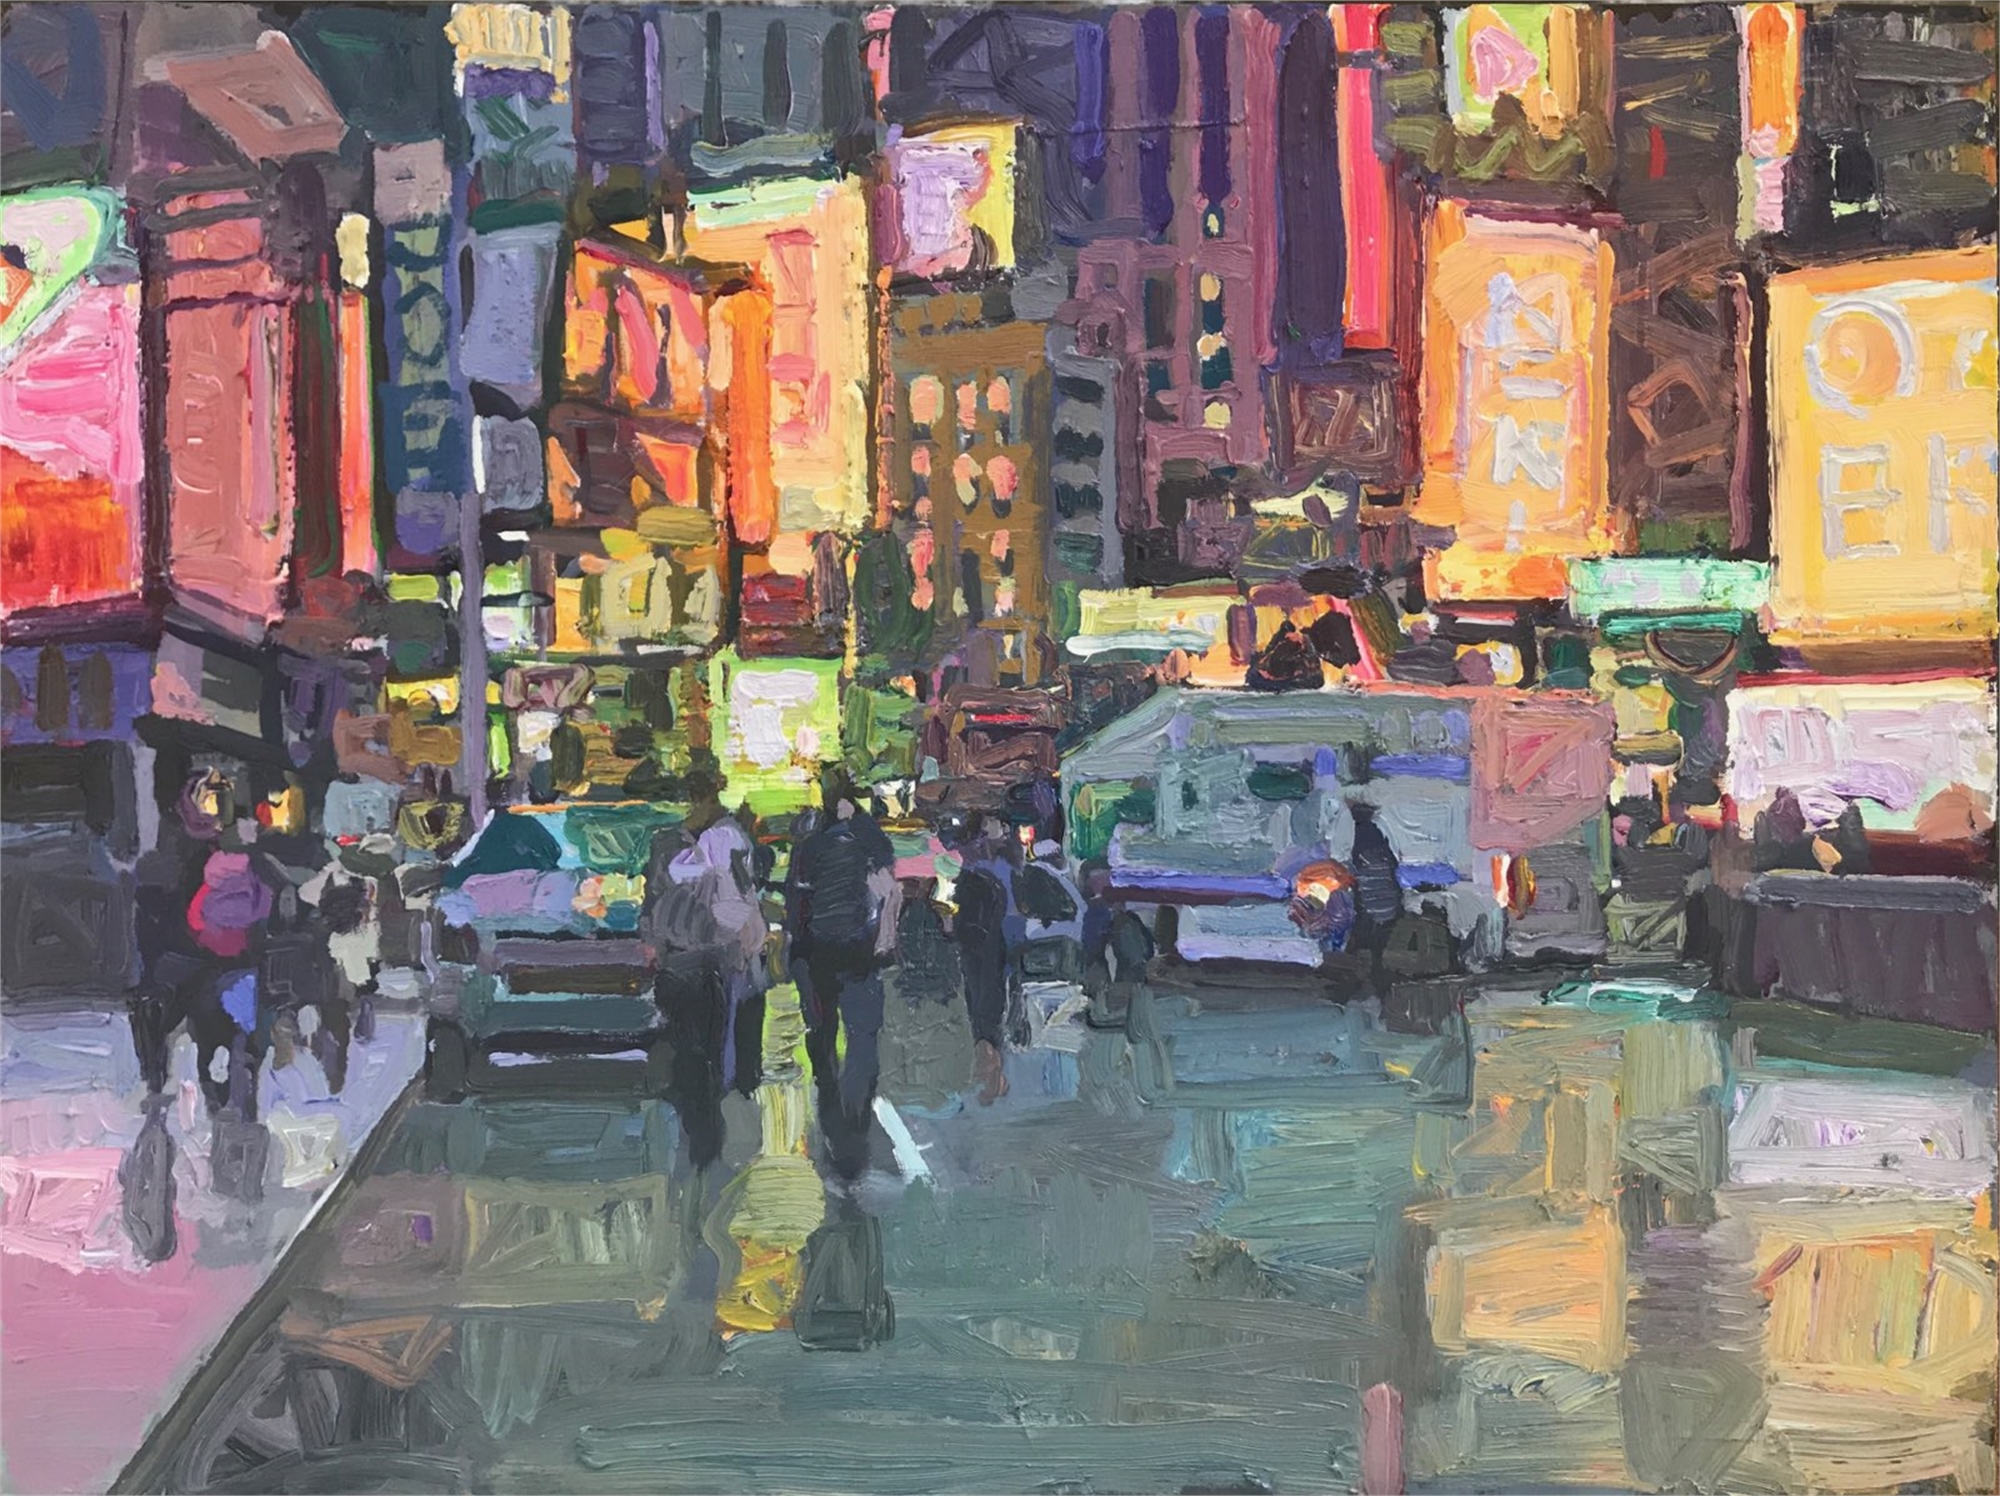 Times Square by Kevin Weckbach